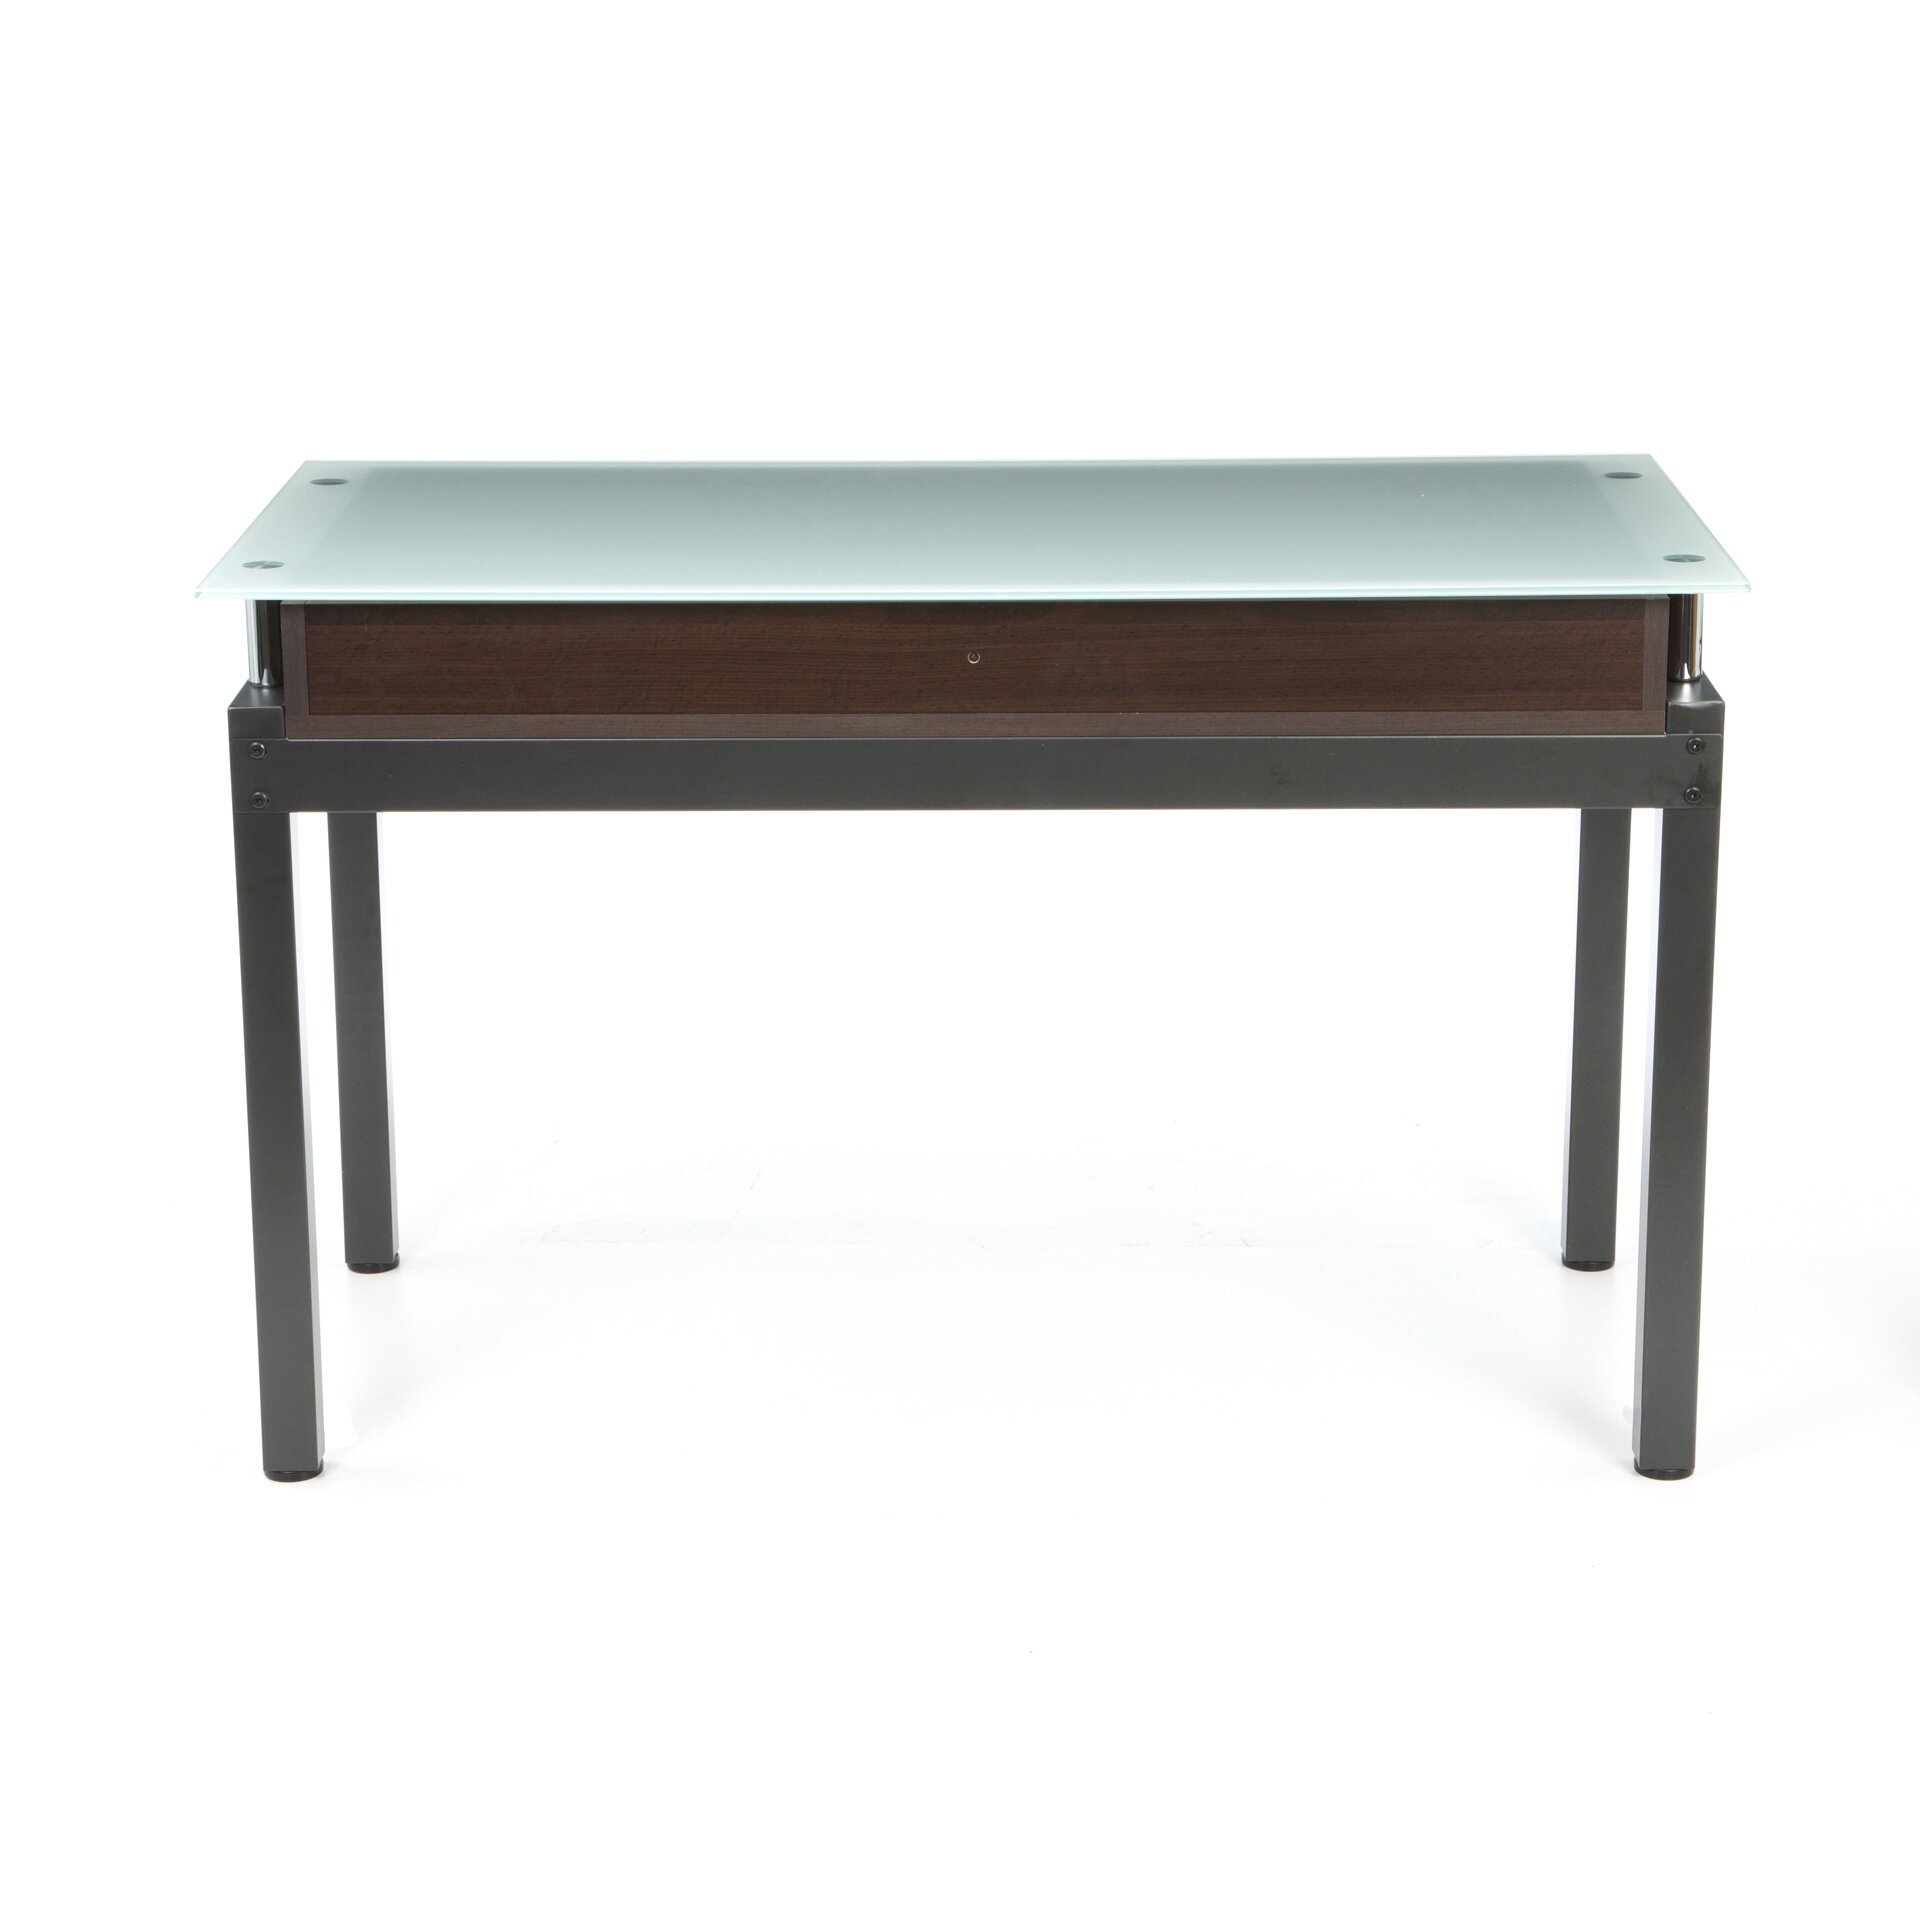 wade logan norton malreward writing desk with glass top reviews wayfair. Black Bedroom Furniture Sets. Home Design Ideas